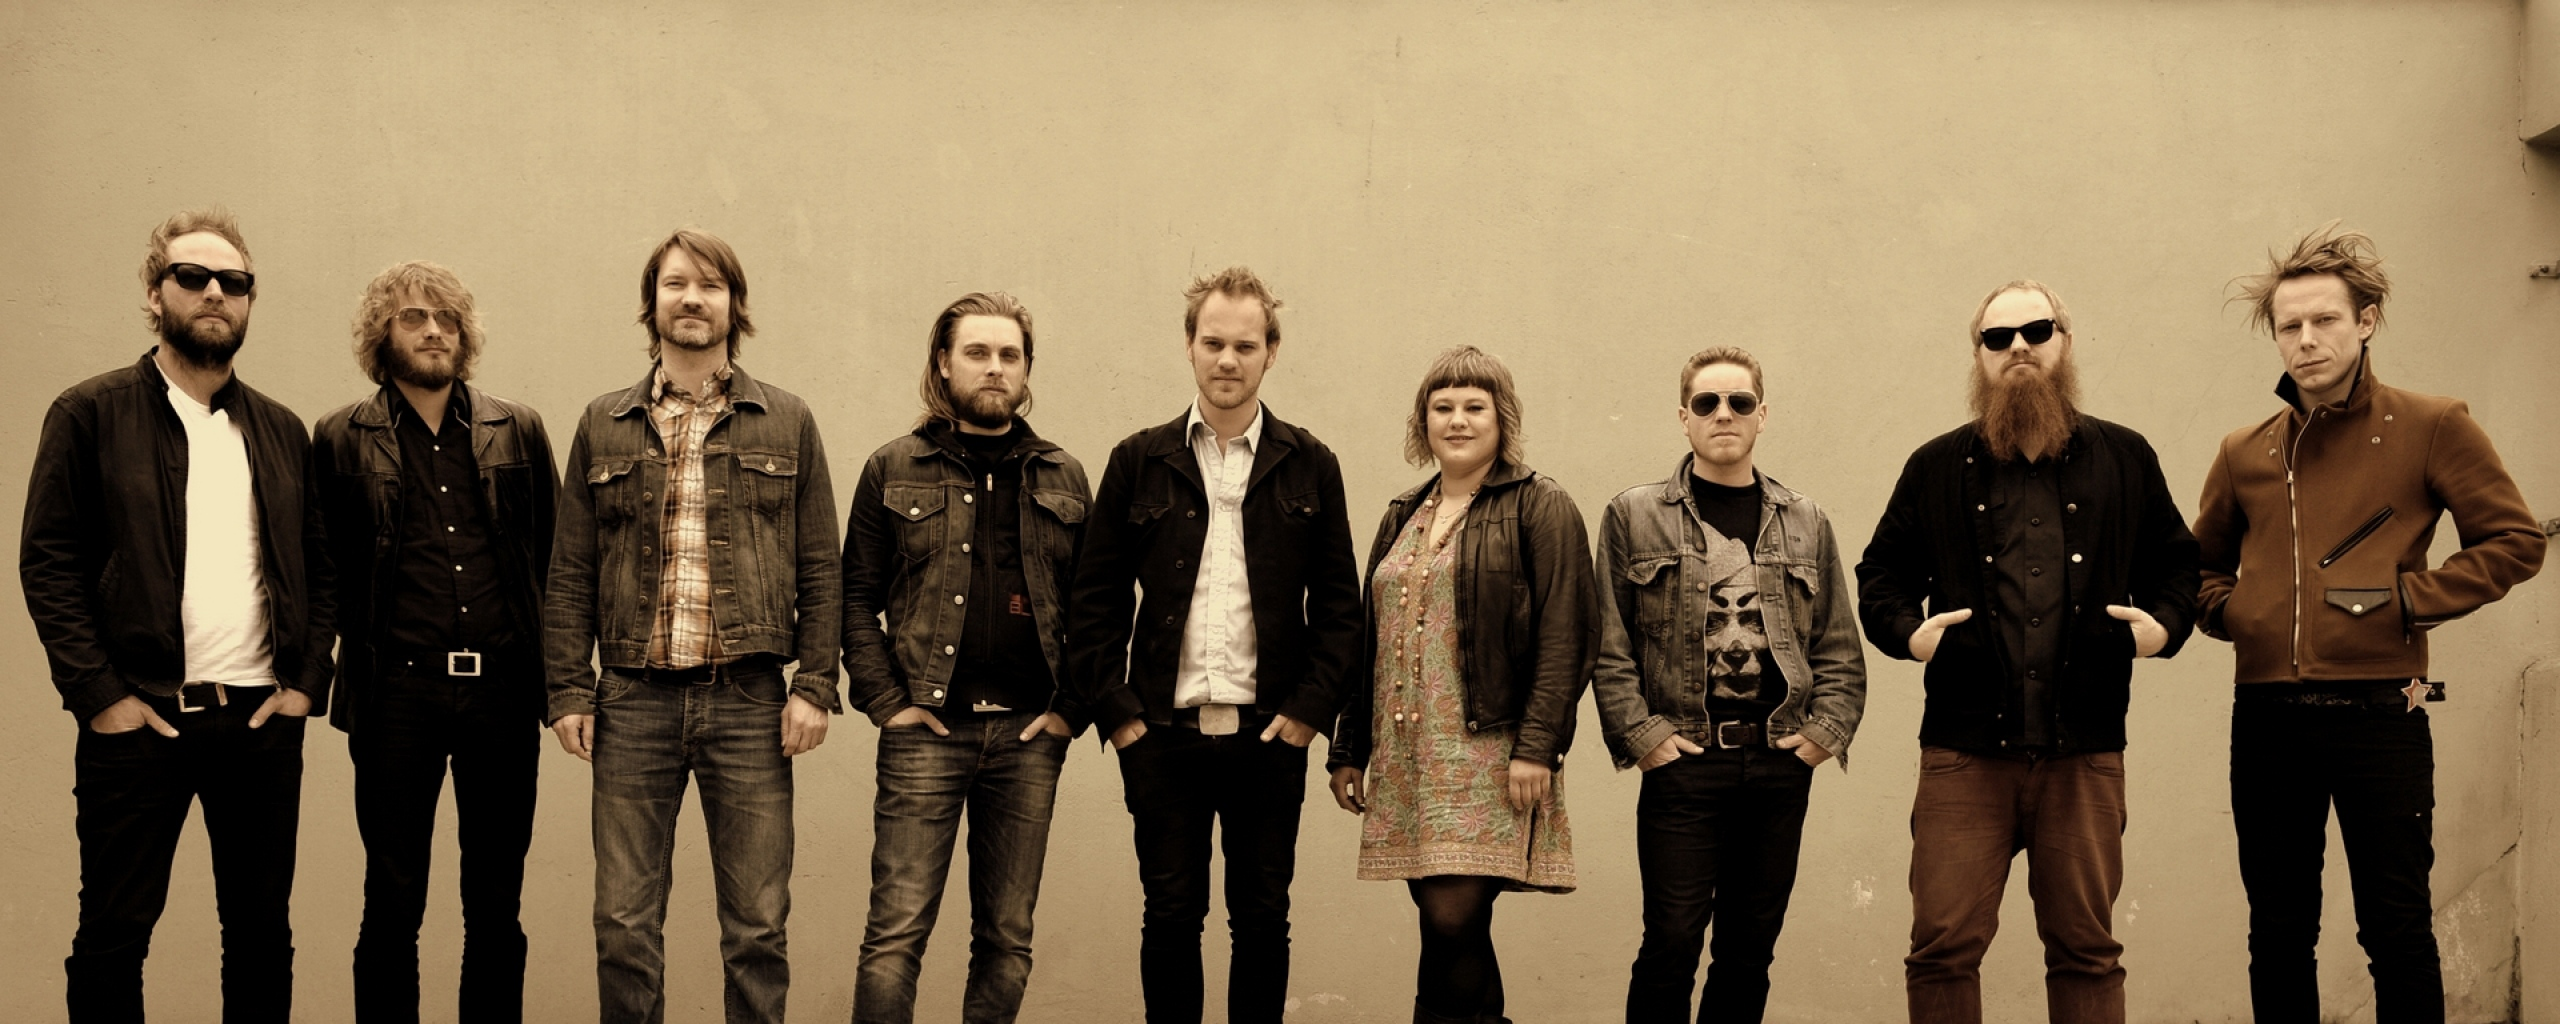 jaga_jazzist_band_faces_line_wall_12987_2560x1024